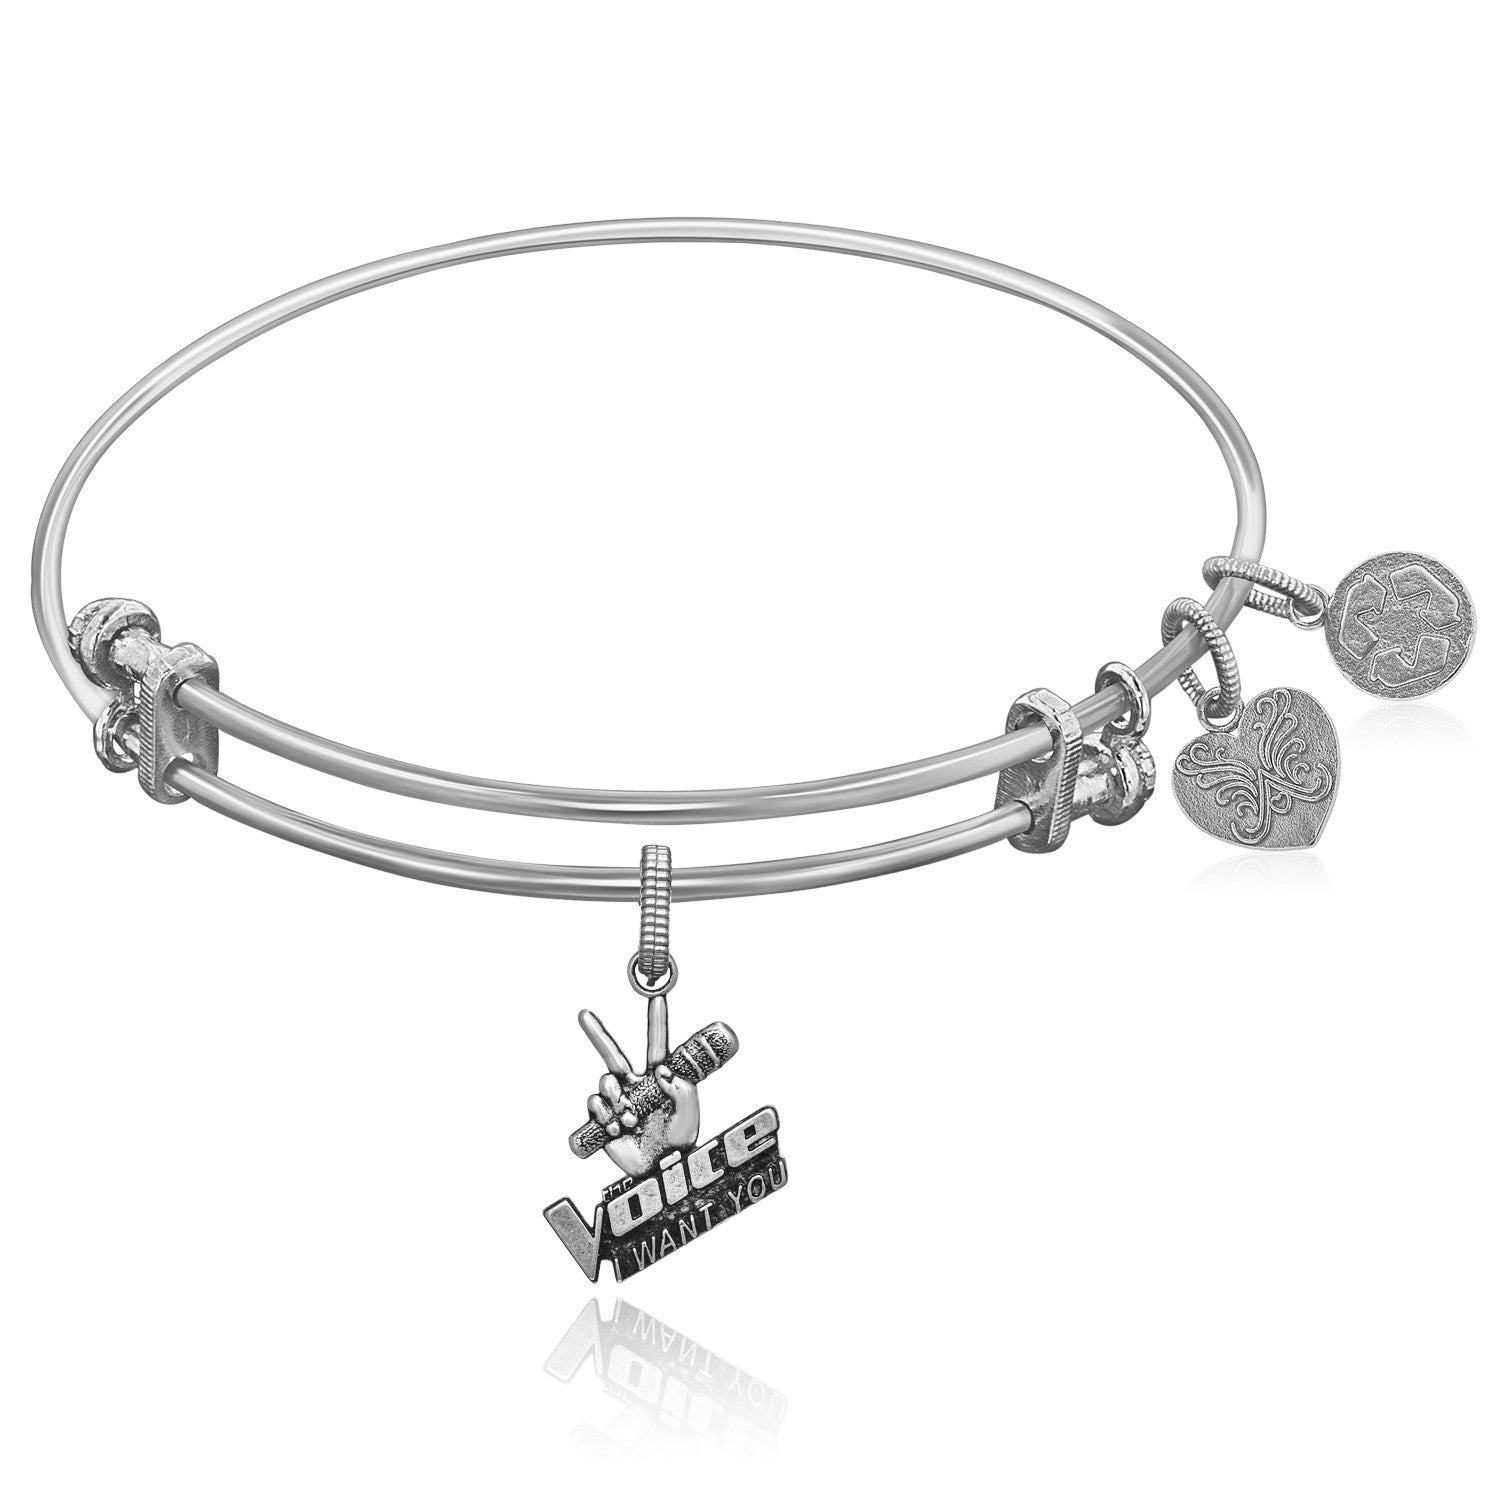 Luxury London Style Original Expandable White Tone Brass Bangle with The Voice Microphone Symbol